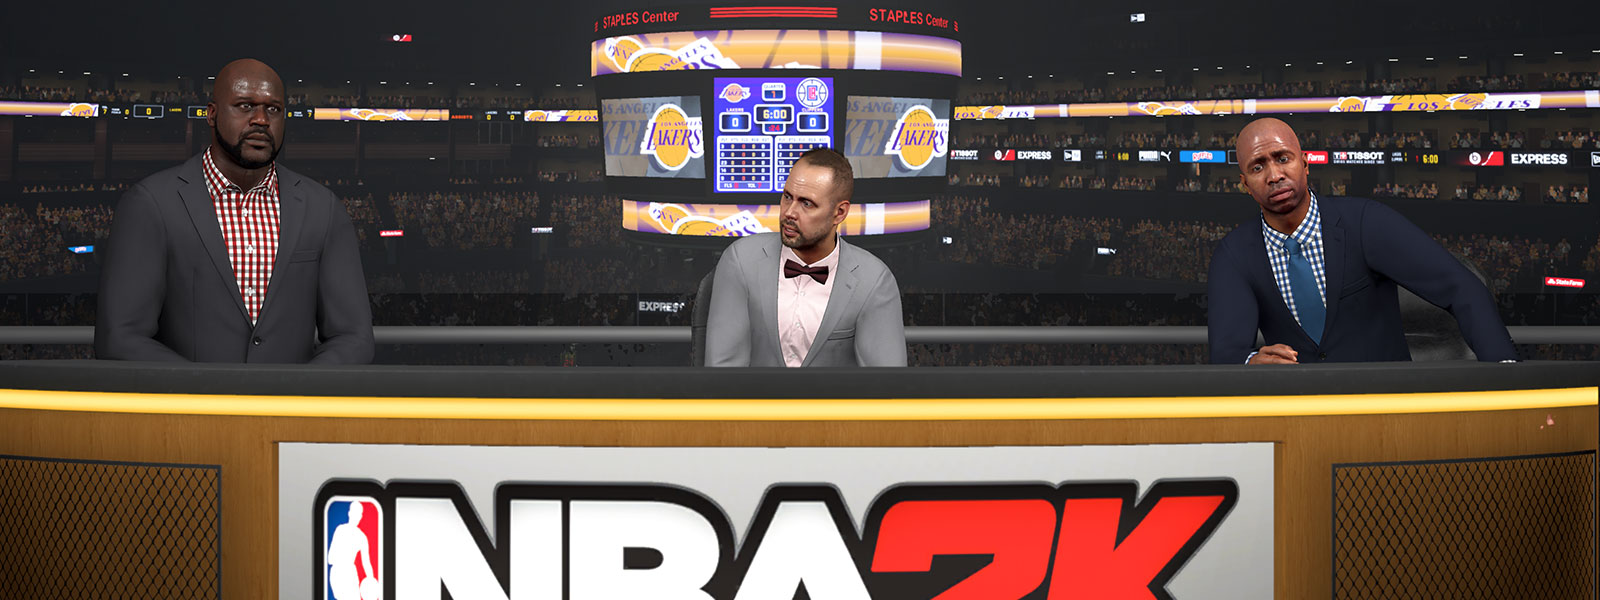 Shaq and another caster behind a NBA 2K analyst desk with the scoreboard behind them in a basketball arena